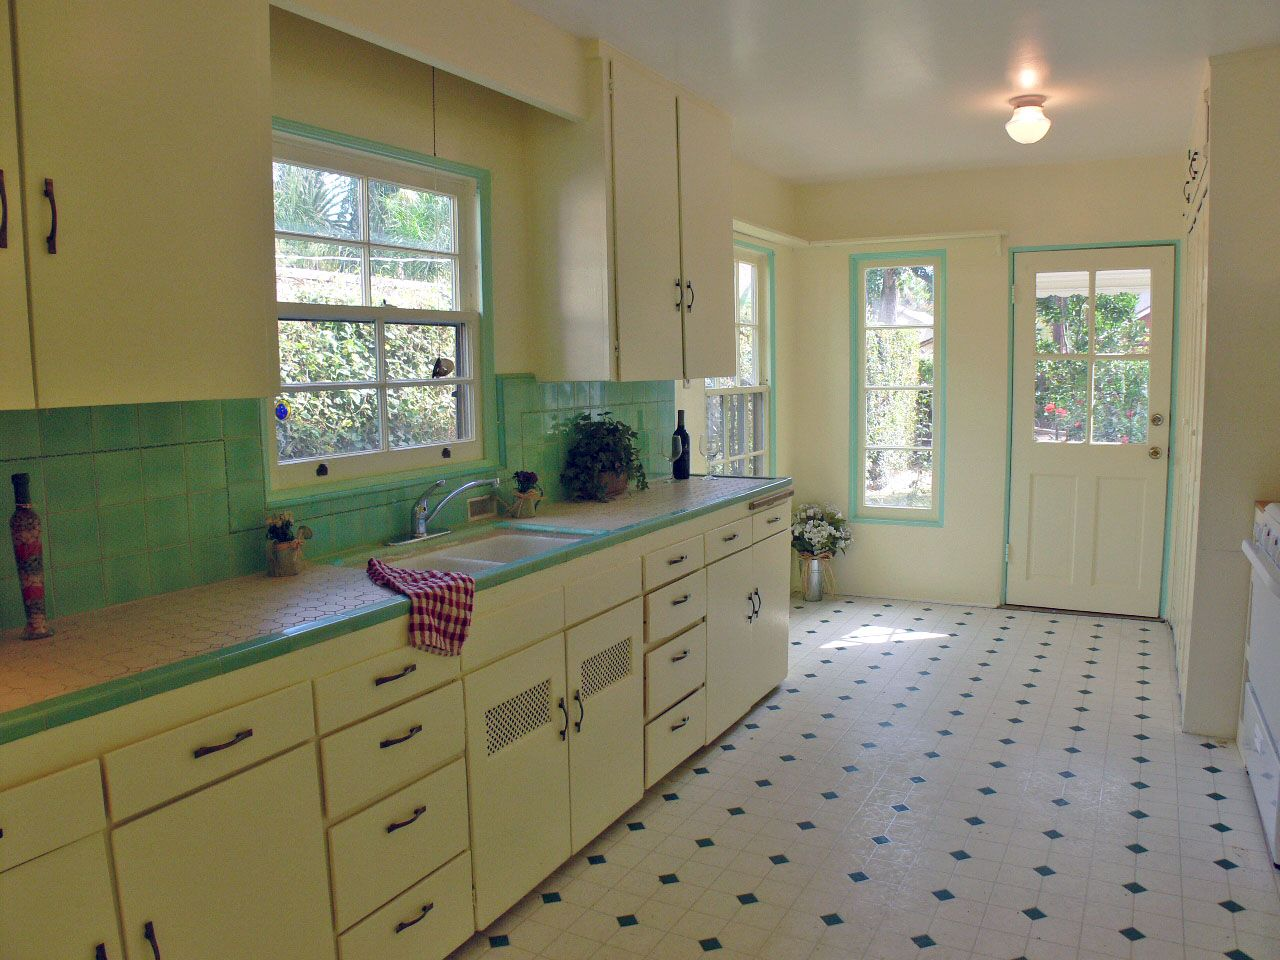 Retro Kitchen Flooring darling kitchen with original honeycomb tile countertops | kitschy